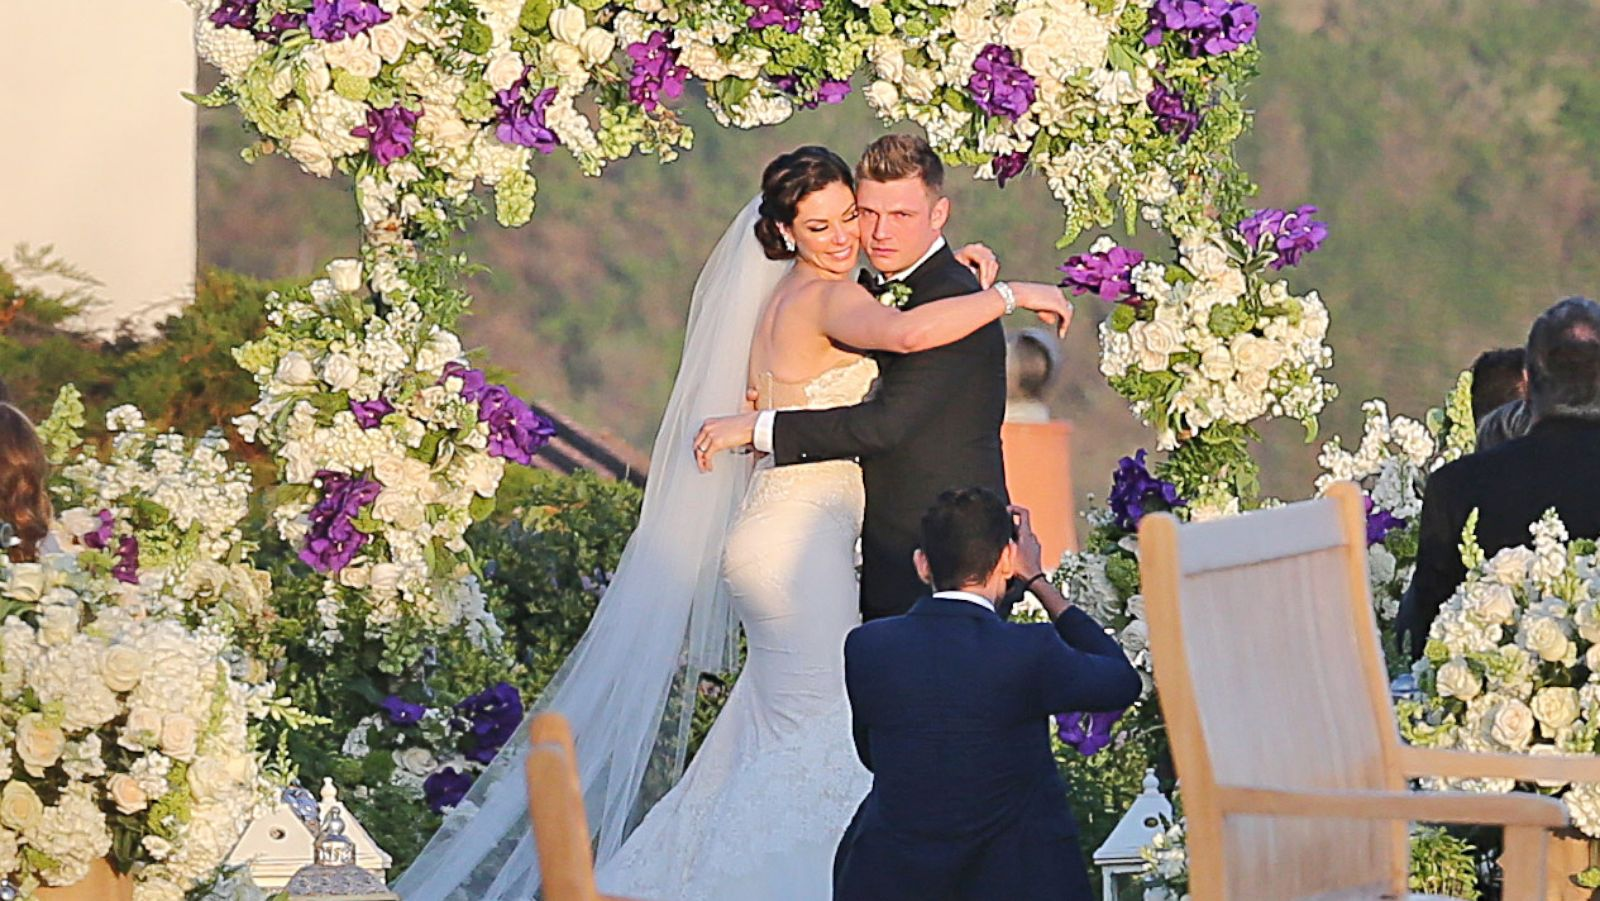 An image of Nick and Lauren Carter on their wedding, embracing under an arch of purple and white flowers. Lauren is smiling and wearing a beautiful white wedding dress and Nick Carter looks to be moved to tears as they both look at a photographer in front of them.